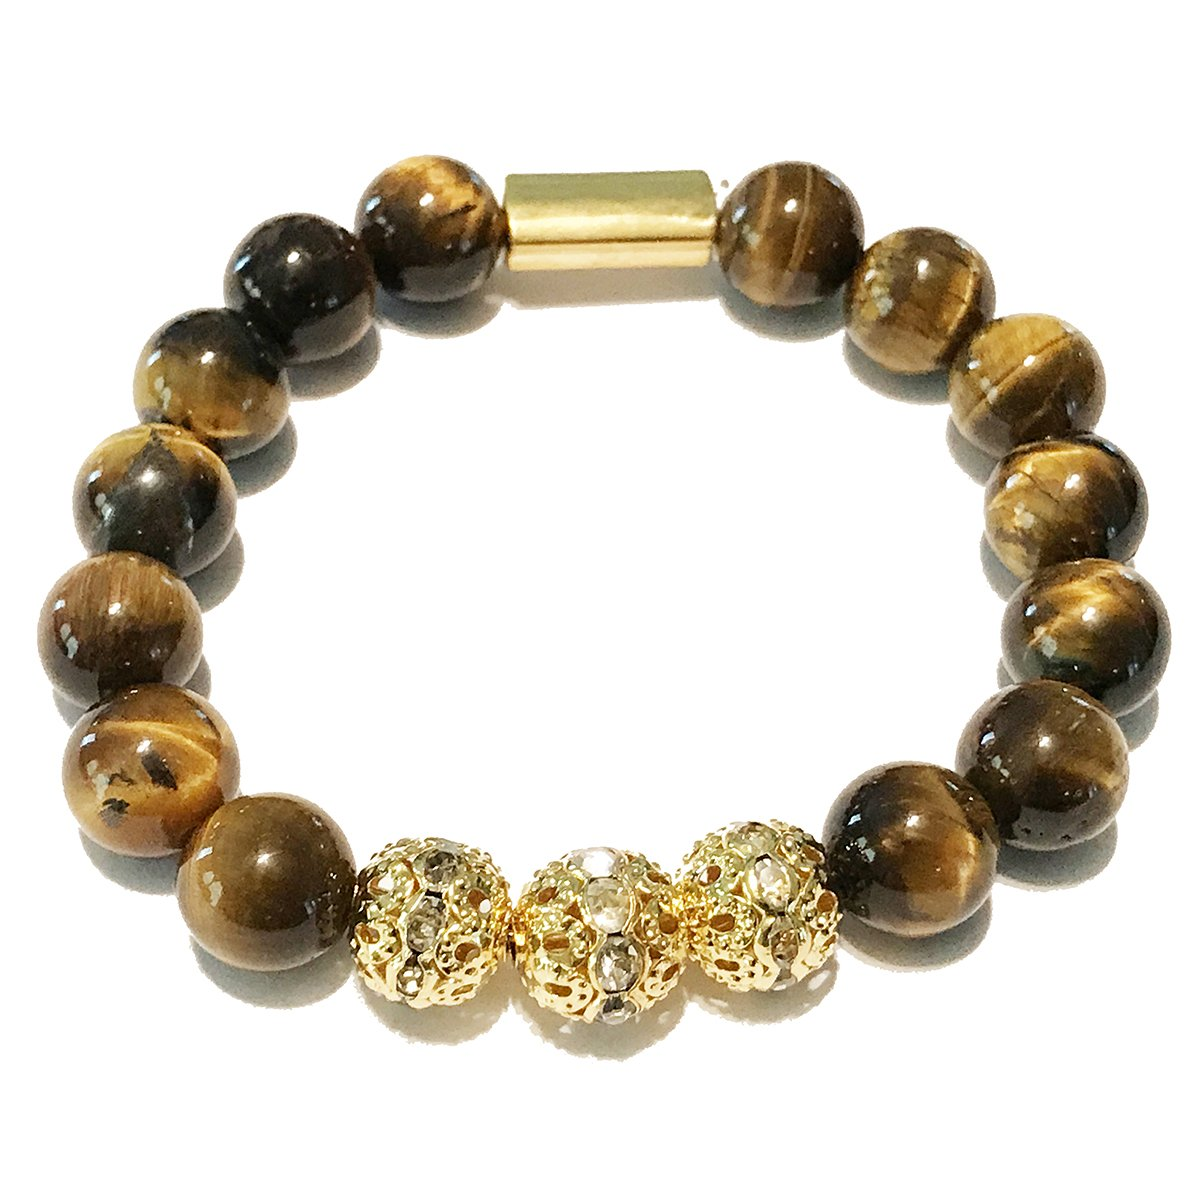 Genuine Tiger Eye Stone Bead Stretchy Elastic Bracelet with Gold Tone Faceted Accents, 8mm, Friendship, Couples Big Cat Rescue BEADBRACELET2017